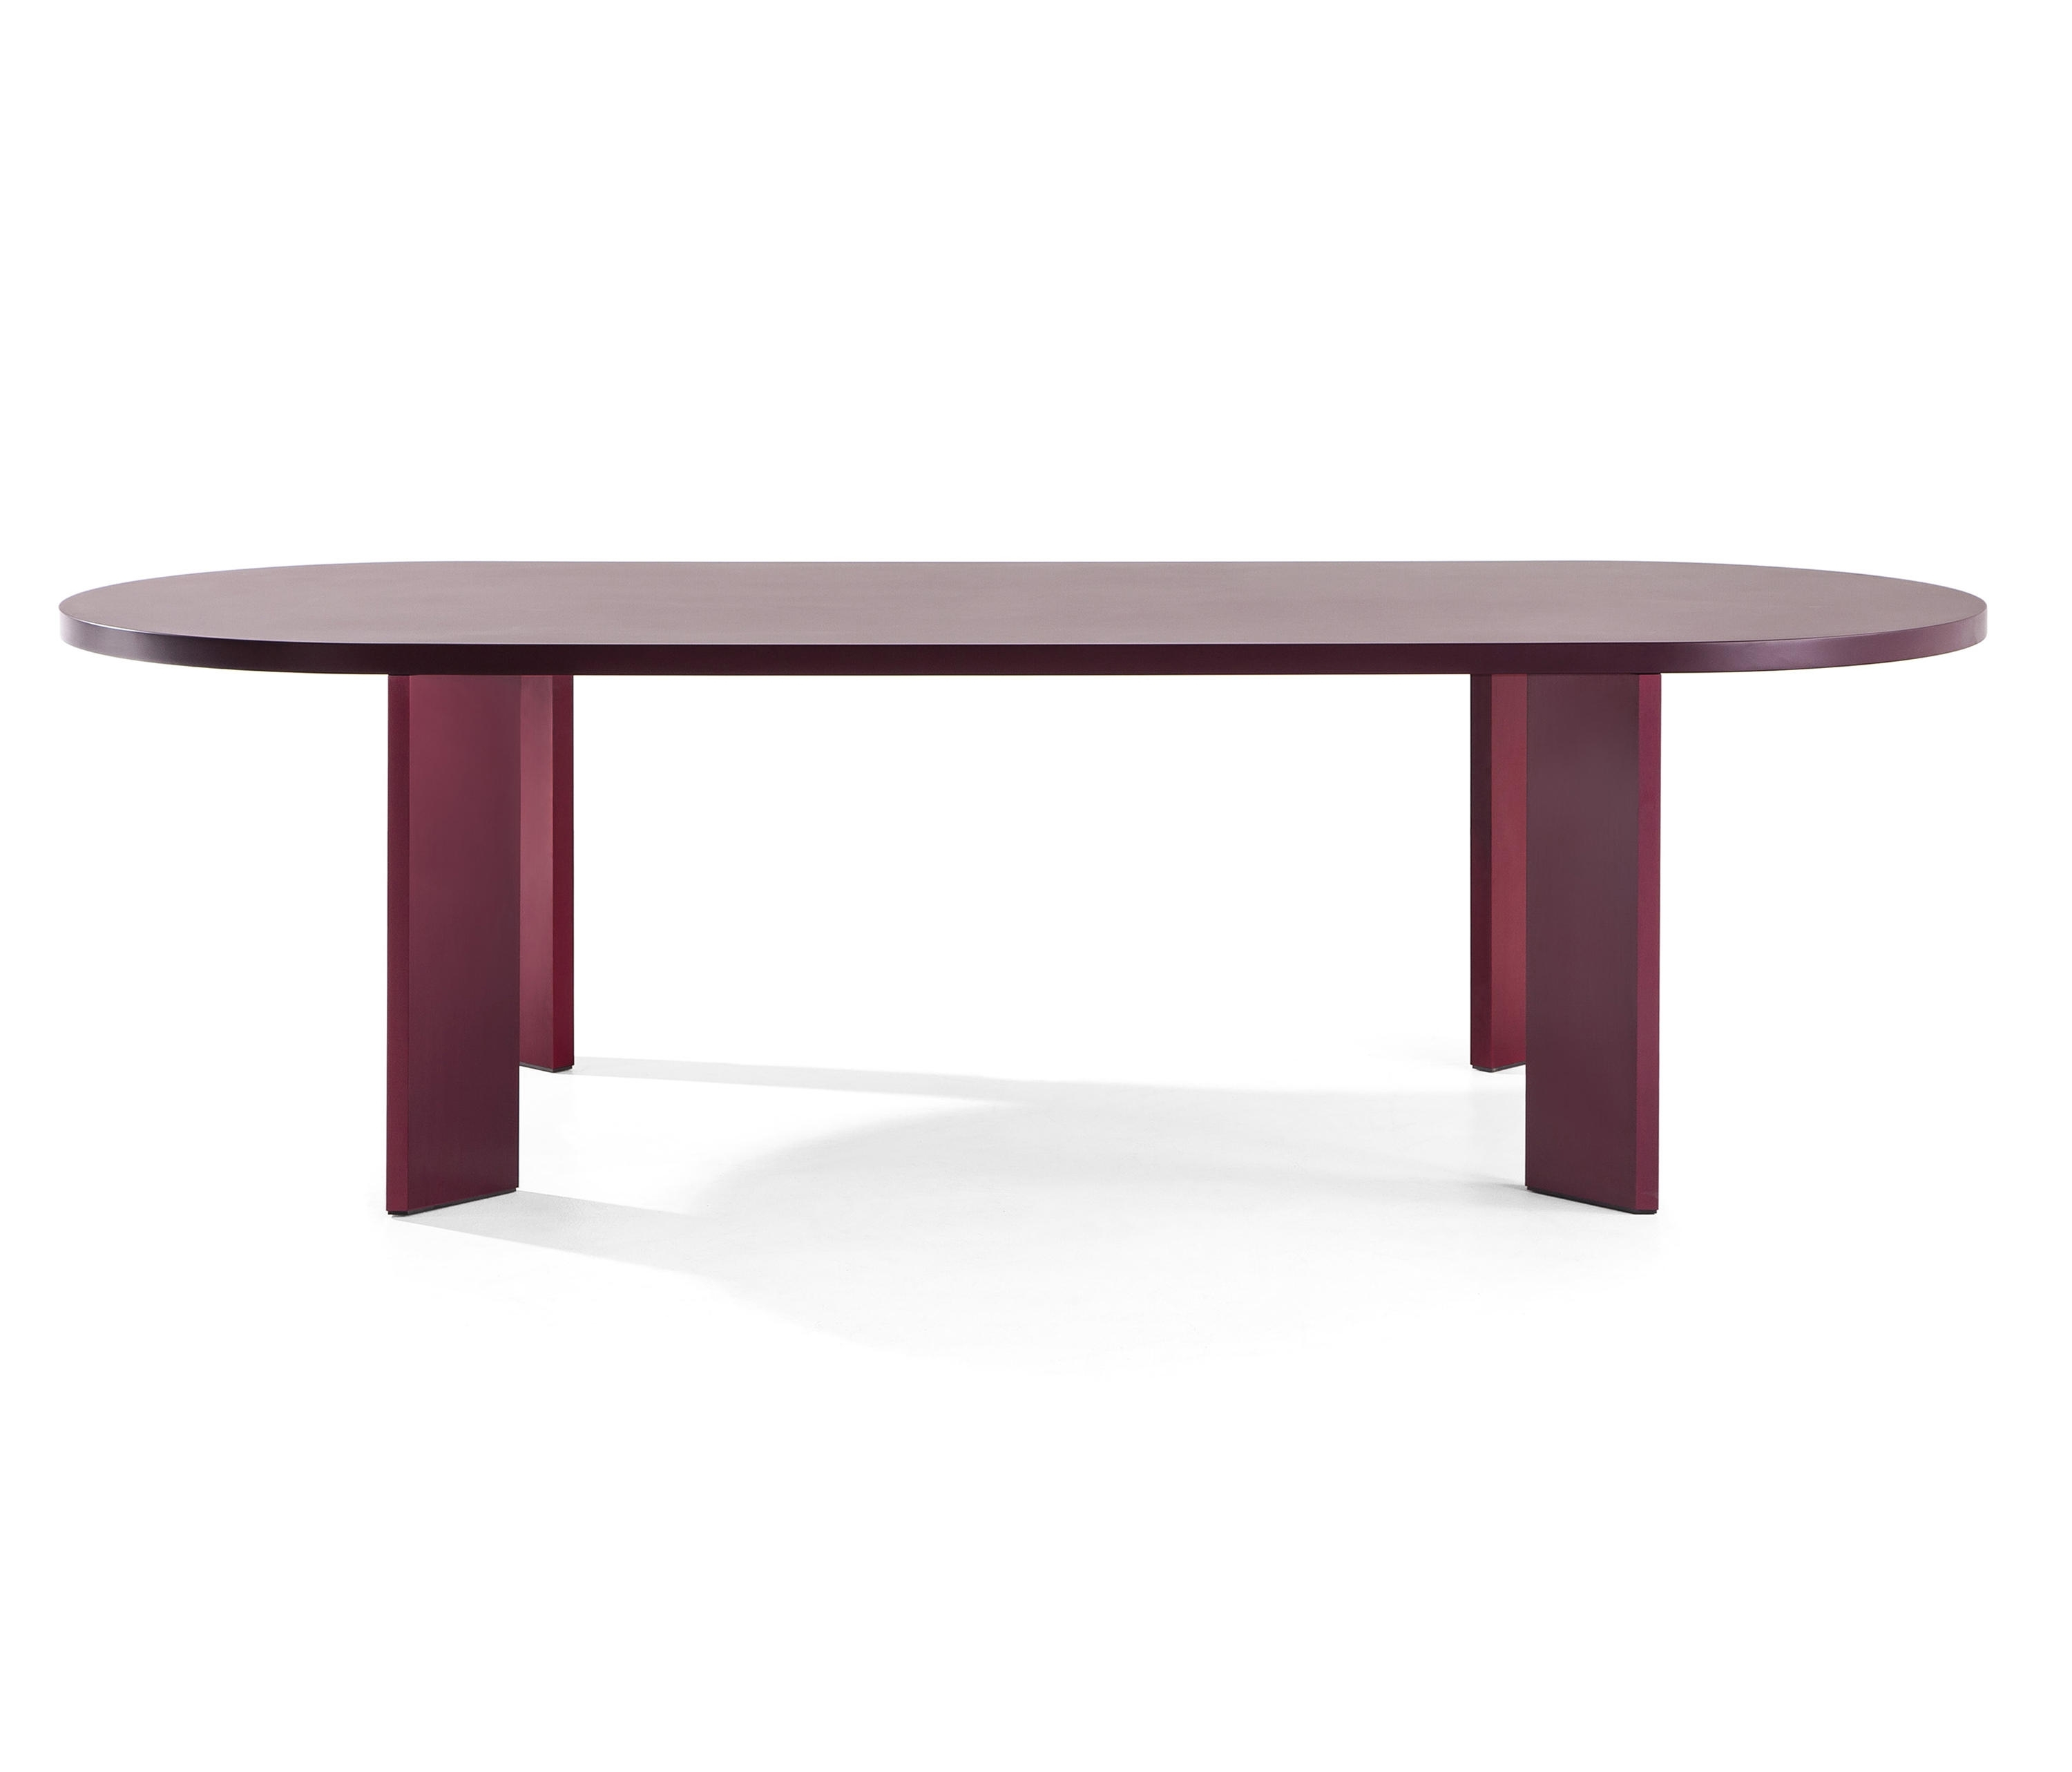 Architonic Regarding Palazzo Rectangle Dining Tables (View 12 of 25)